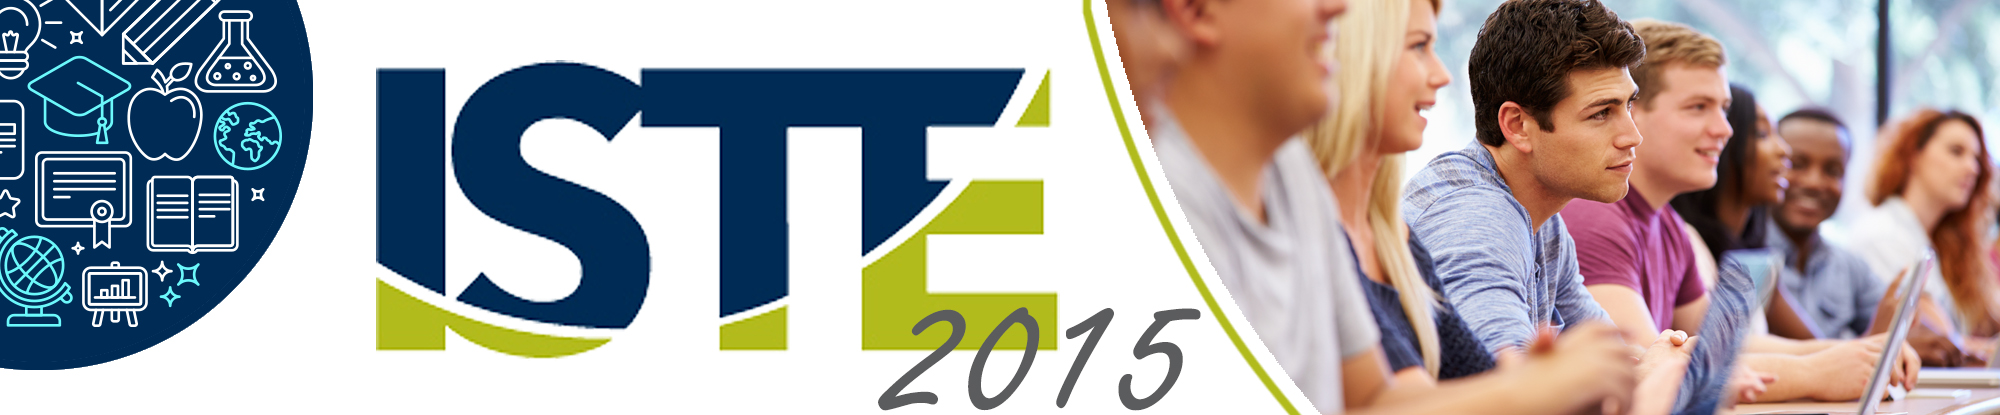 ViewSonic Showcases Smart Collaboration Solutions  For Today's Classroom at ISTE 2015